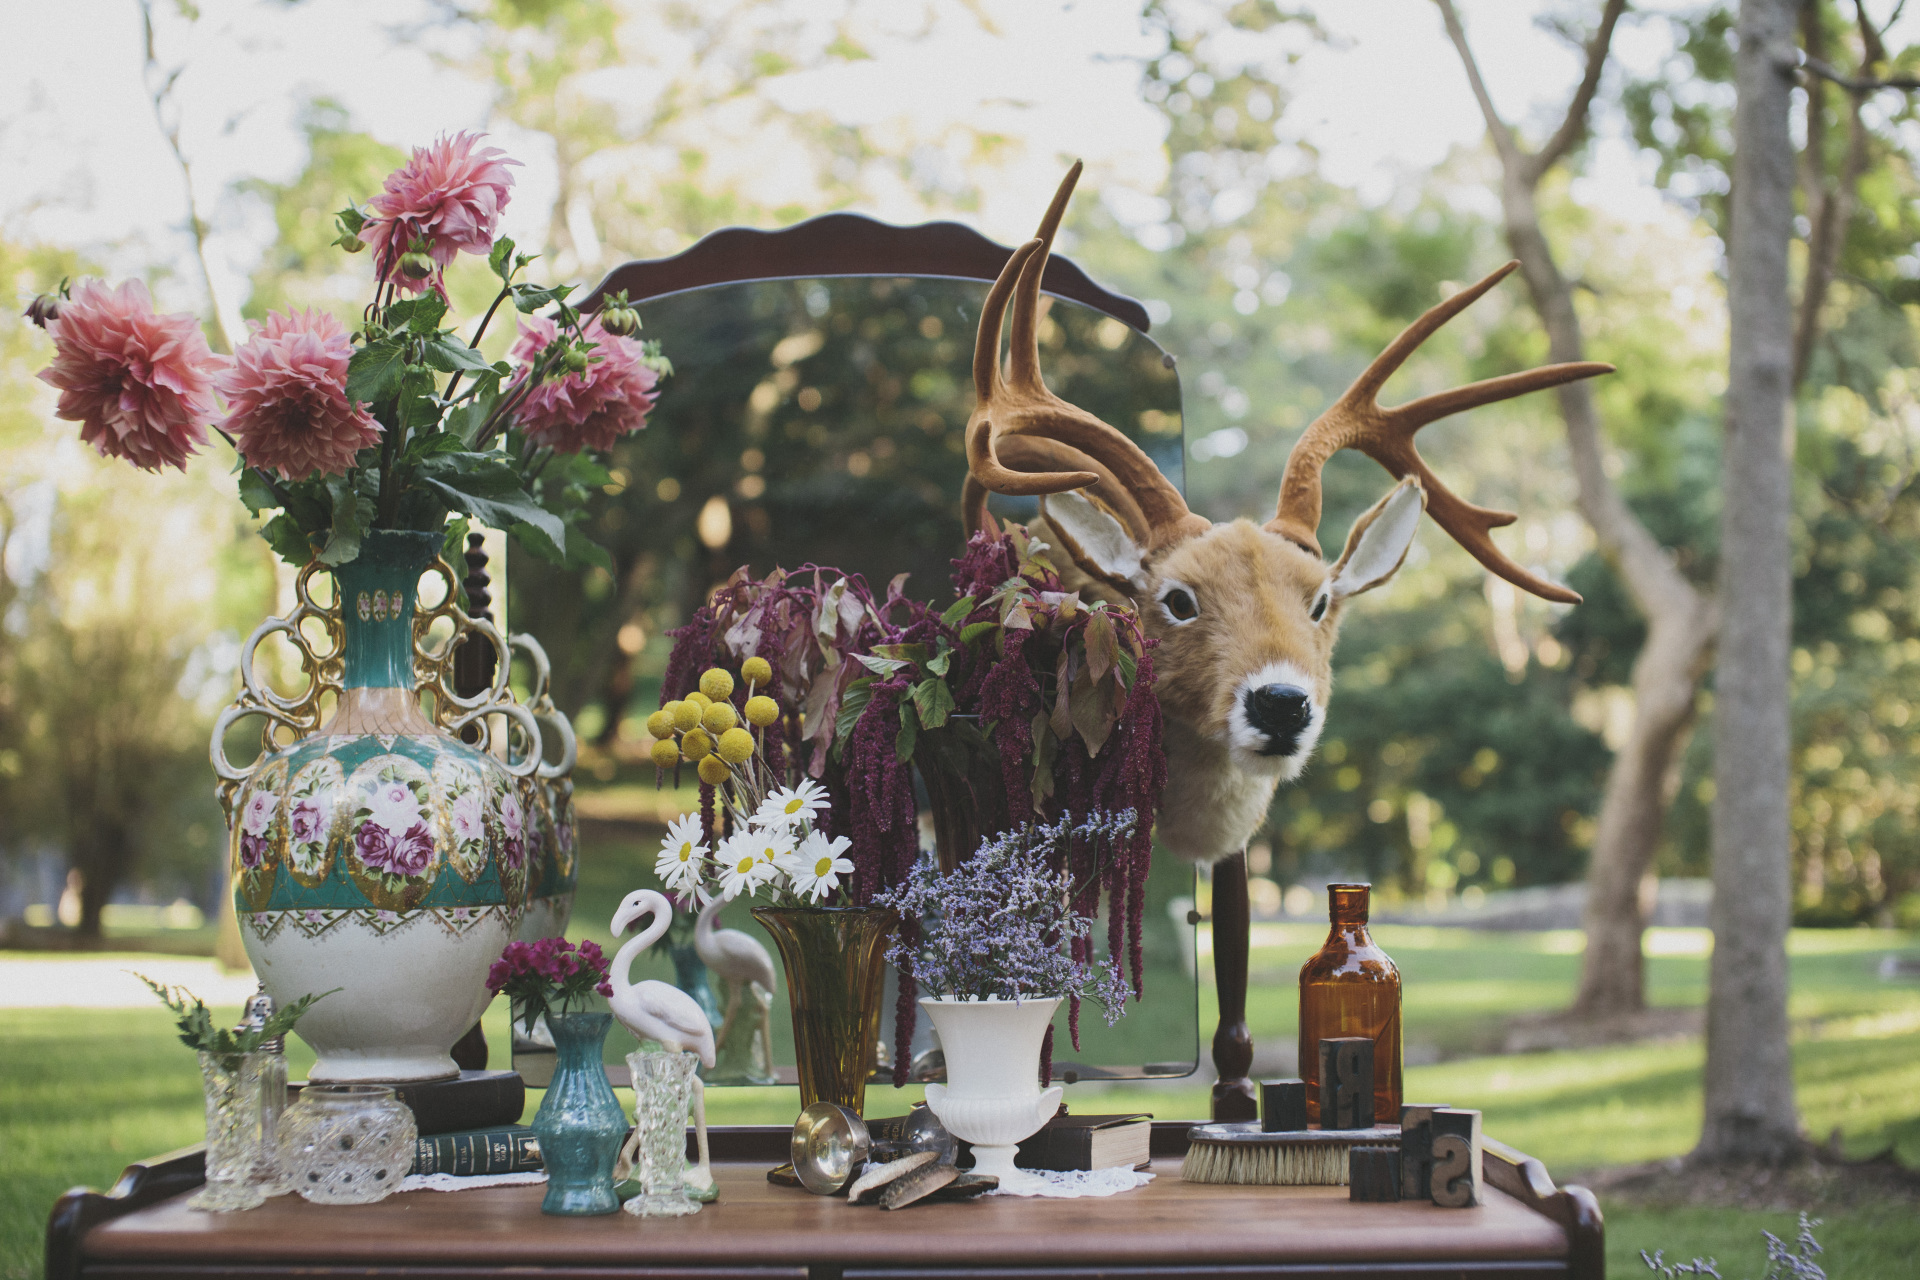 Dressing table decor and styling, vintage prop styling, deer head setting, vintage wedding styling kelvin estate wedding styling, kelvin estate